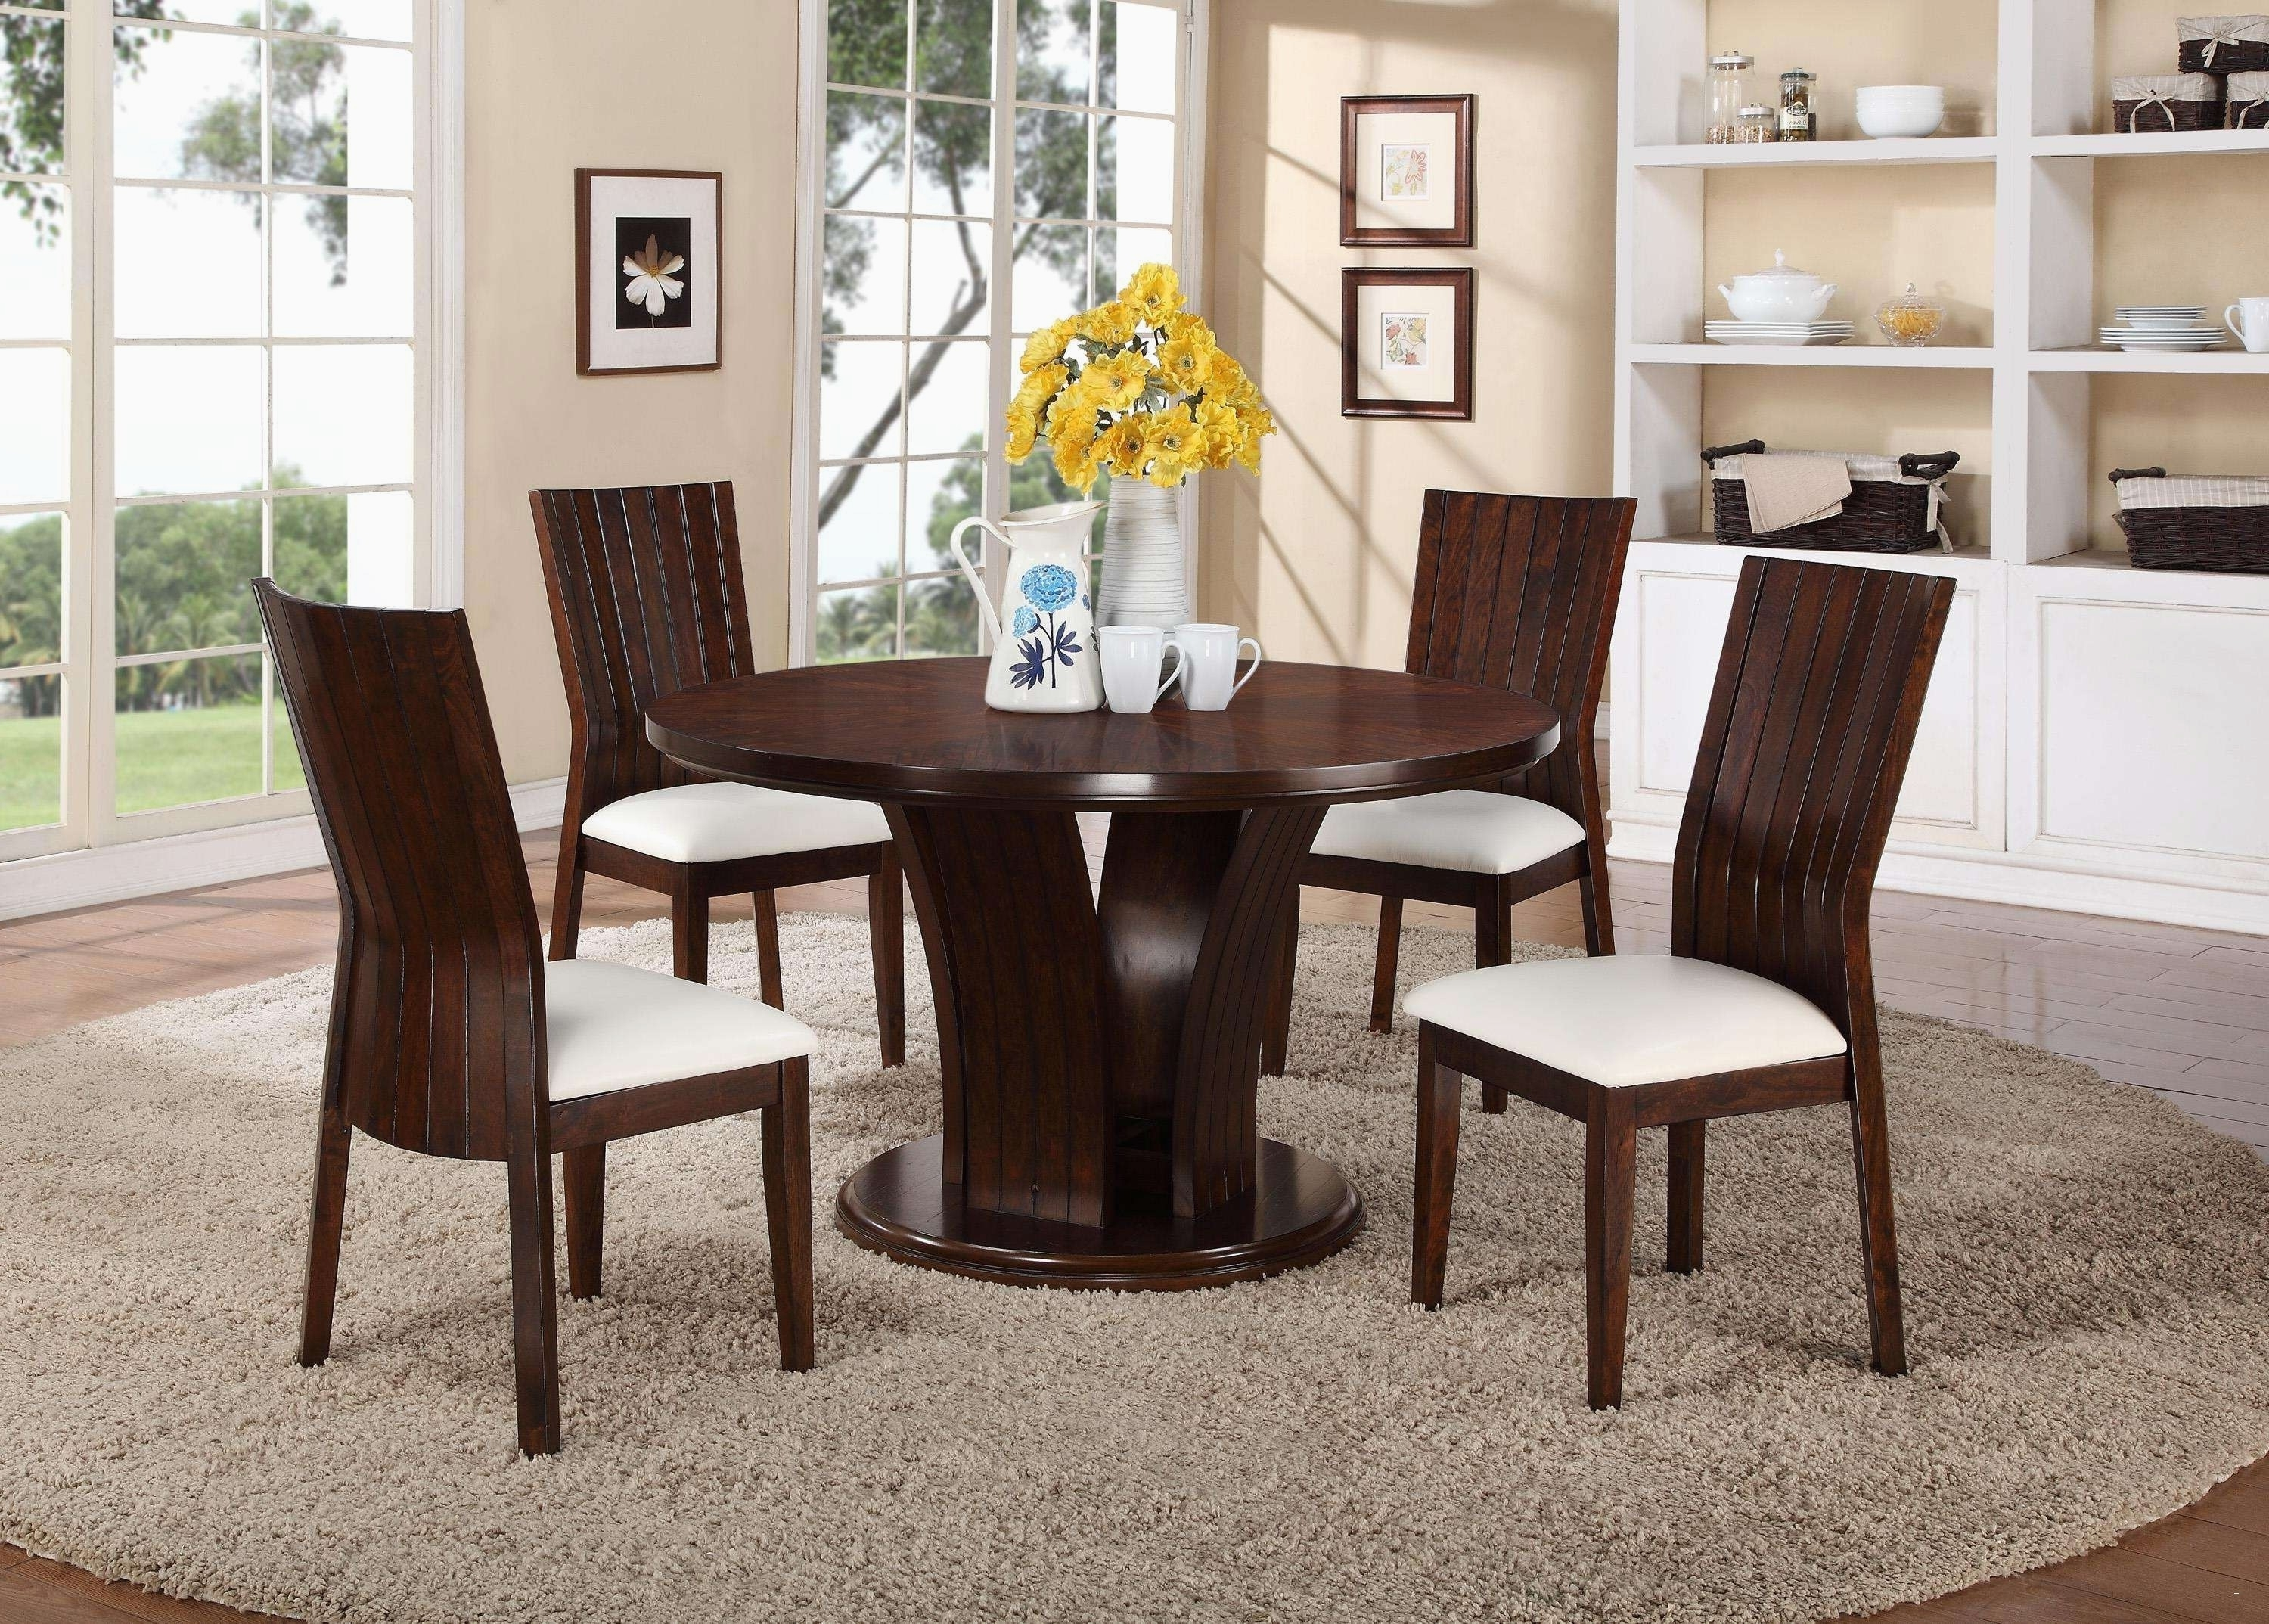 6 Seat Round Dining Tables with Most Popular Round Dining Tables For 8 Inspirational 6 Seat Round Dining Table